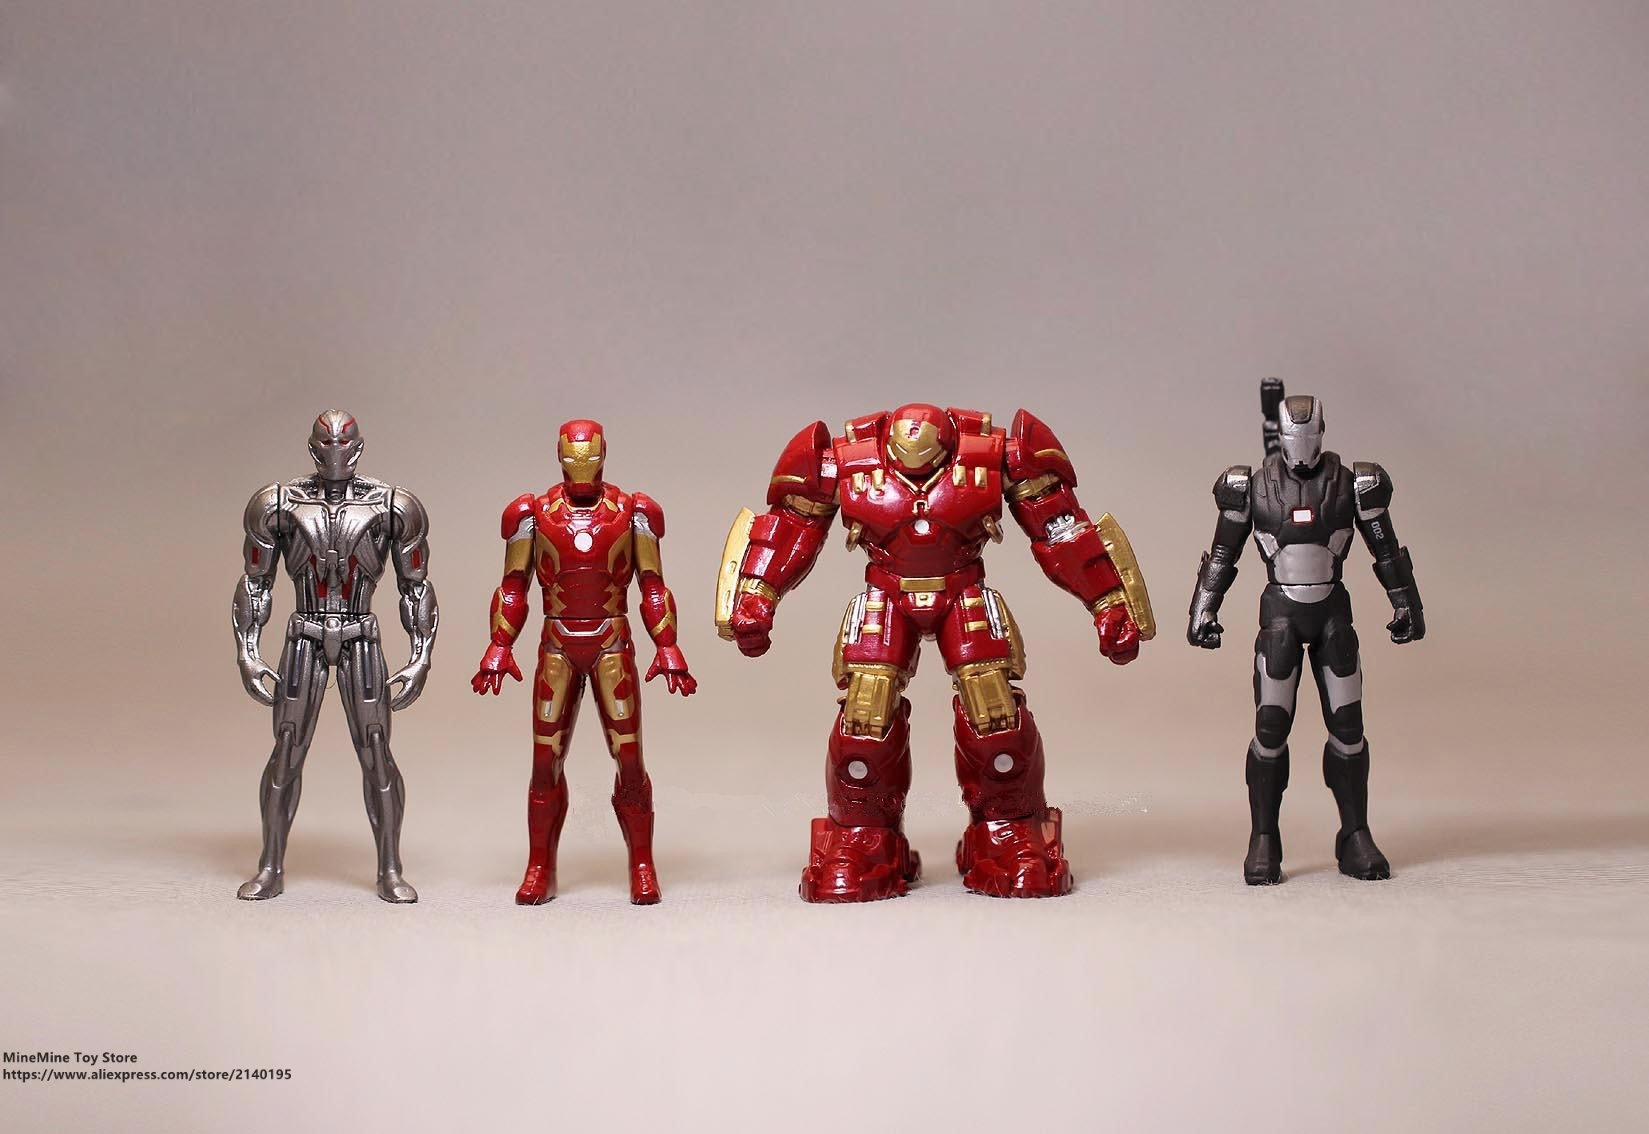 ZXZ Marvel Avengers Iron Man 3 Ultron 5-6cm metal Action Figure Anime Mini Decoration PVC Collection Figurine Toy model gift 30cm big size marvel iron man movable avengers movie anime figure pvc collection model toy action figure for friends gift